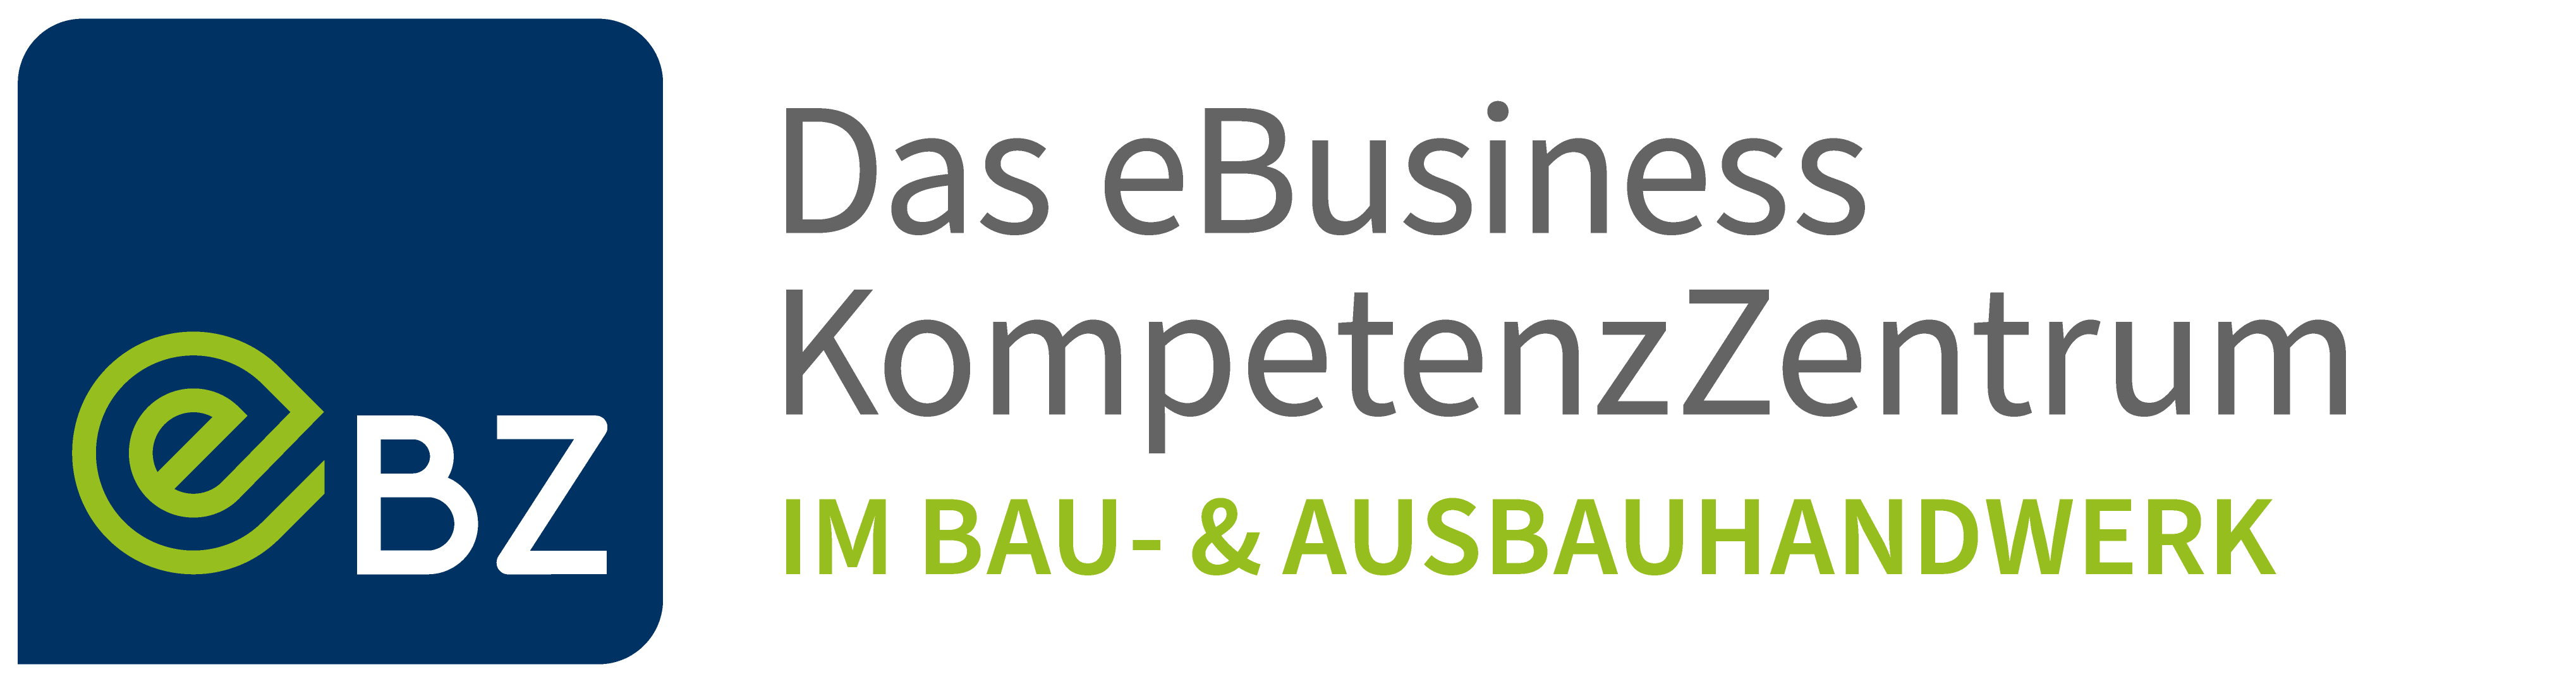 Das eBusiness-KompetenzZentrum